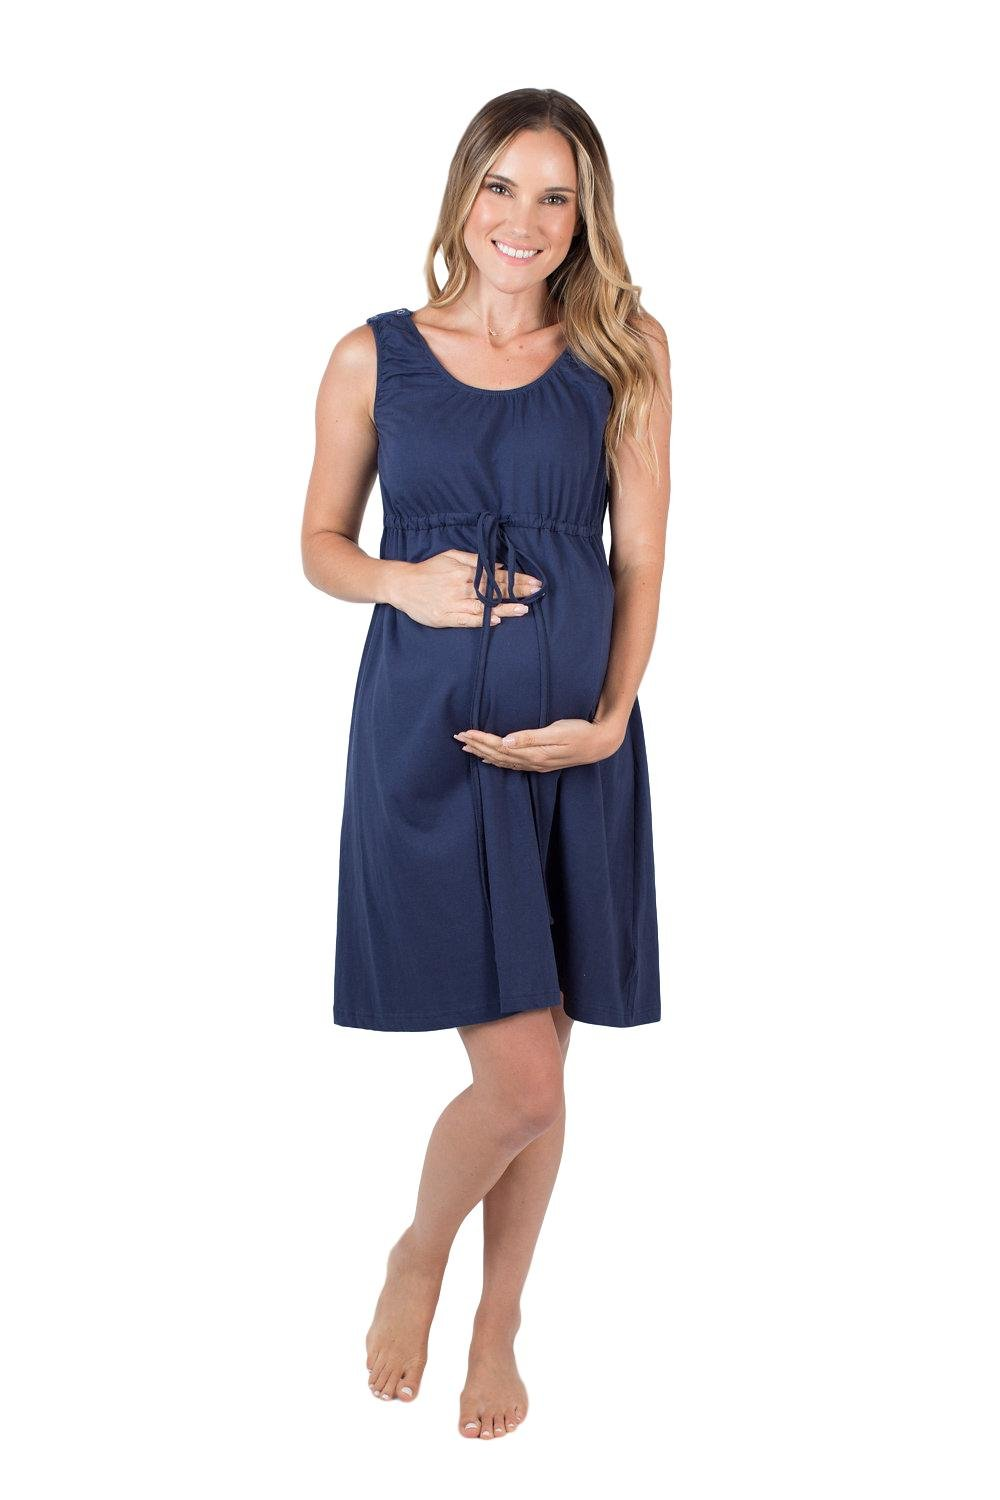 Baby Be Mine 3 in 1 Labor/Delivery/Nursing Hospital Gown Maternity, Hospital Bag Must Have (S/M, Navy Blue)